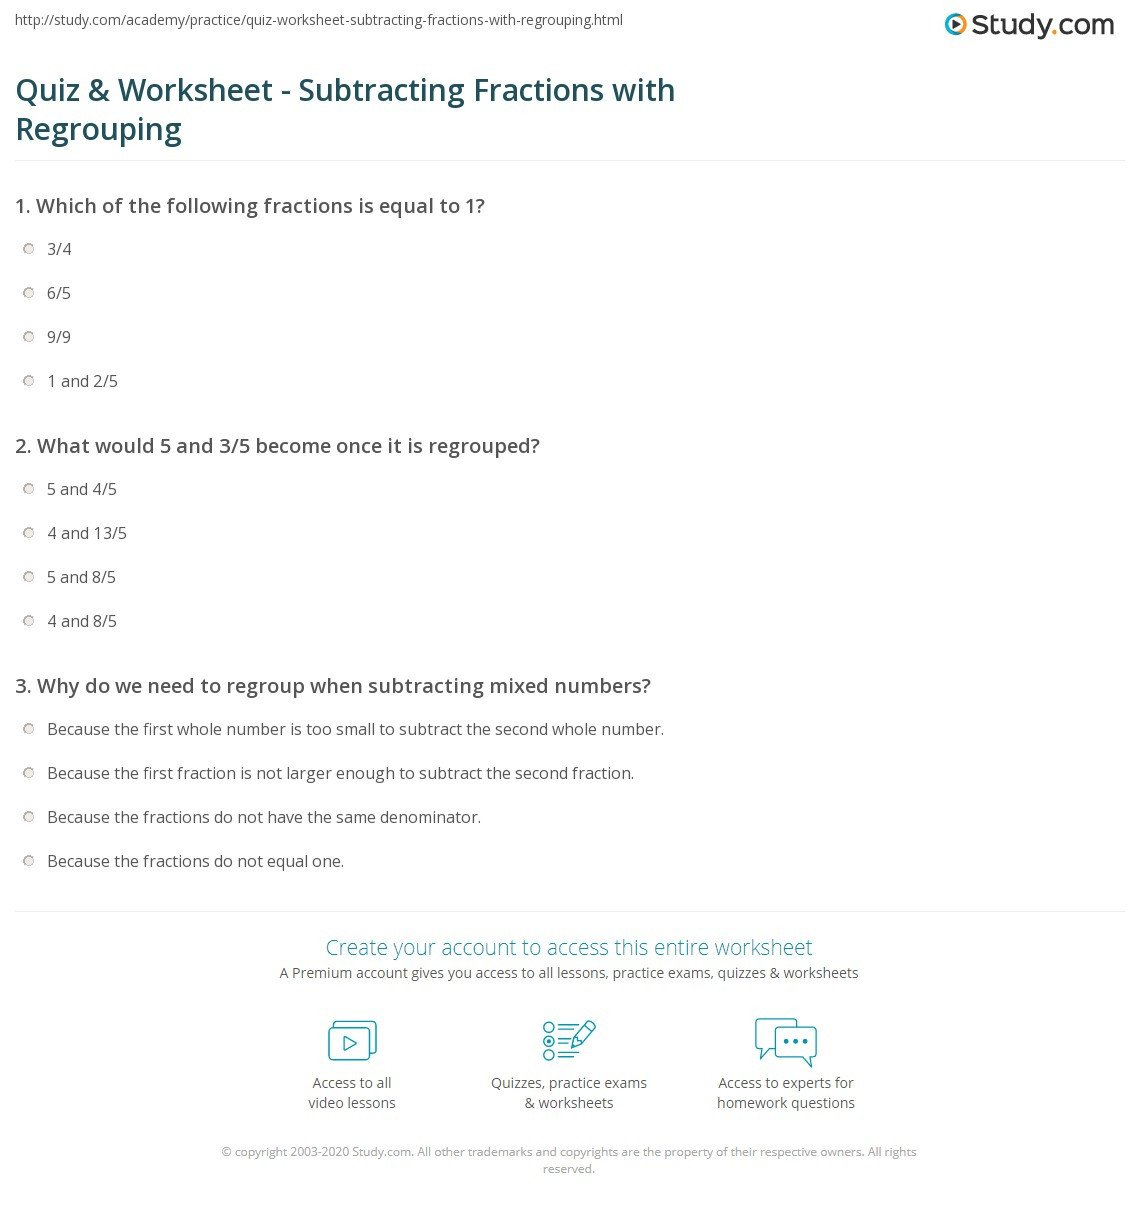 Regrouping Fractions Worksheet Quiz & Worksheet Subtracting Fractions with Regrouping